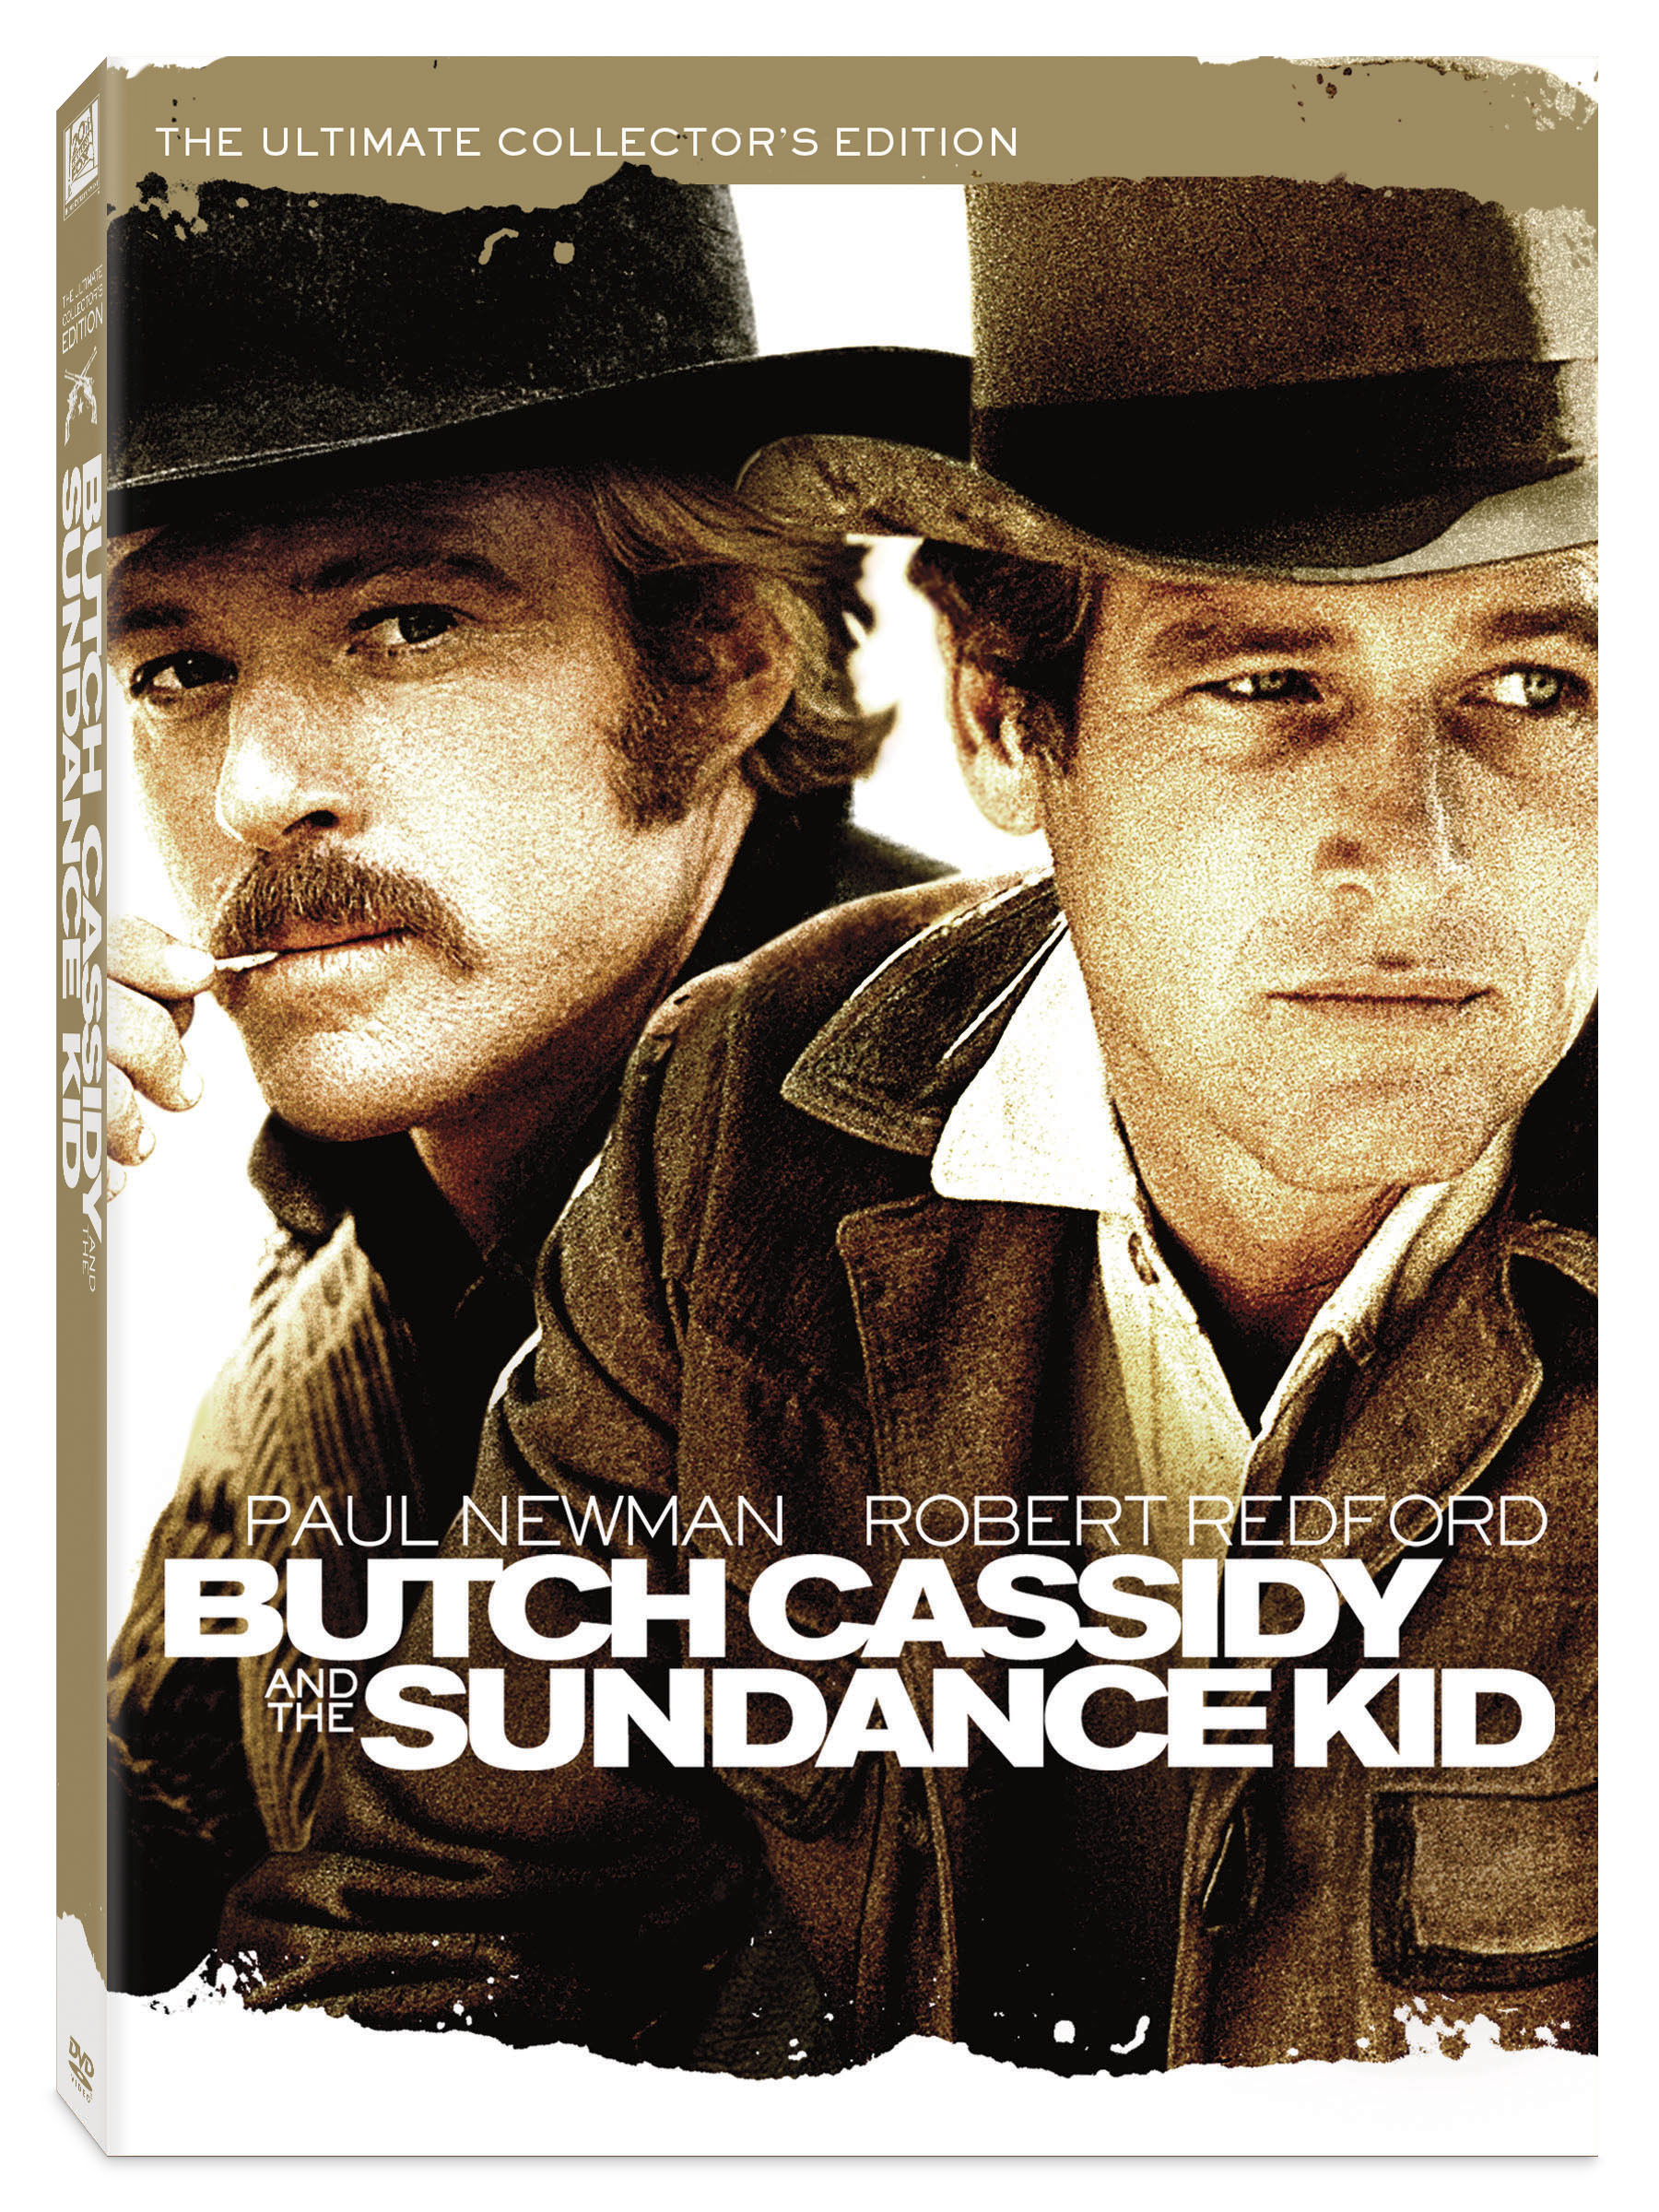 Butch Cassidy and the Sundance Kid DVD cover